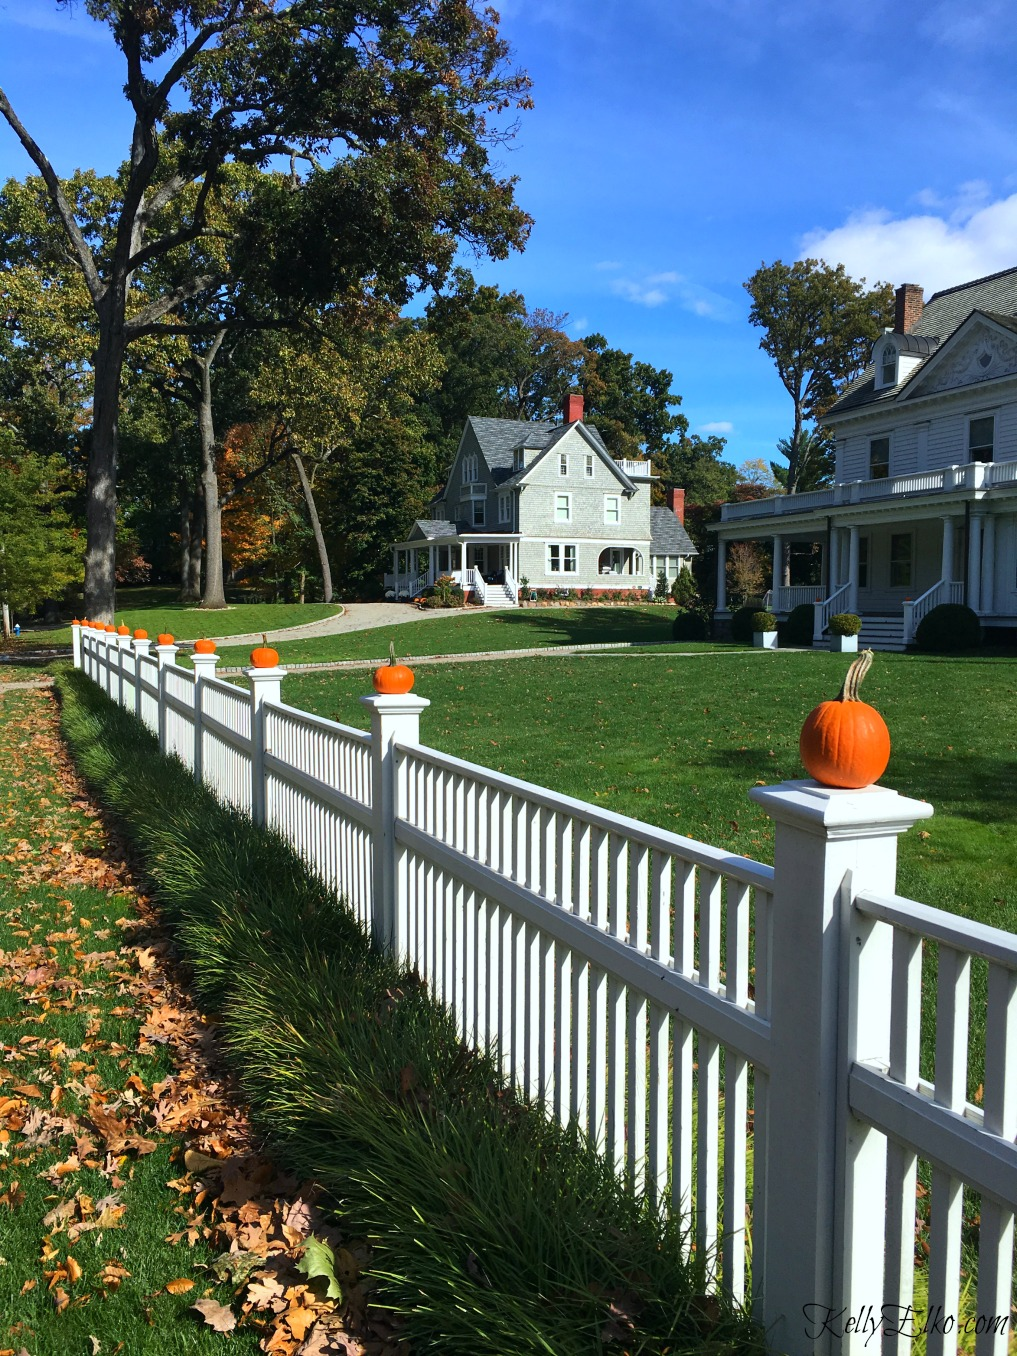 Pumpkin picket fence - see more fall homes with curb appeal kellyelko.com